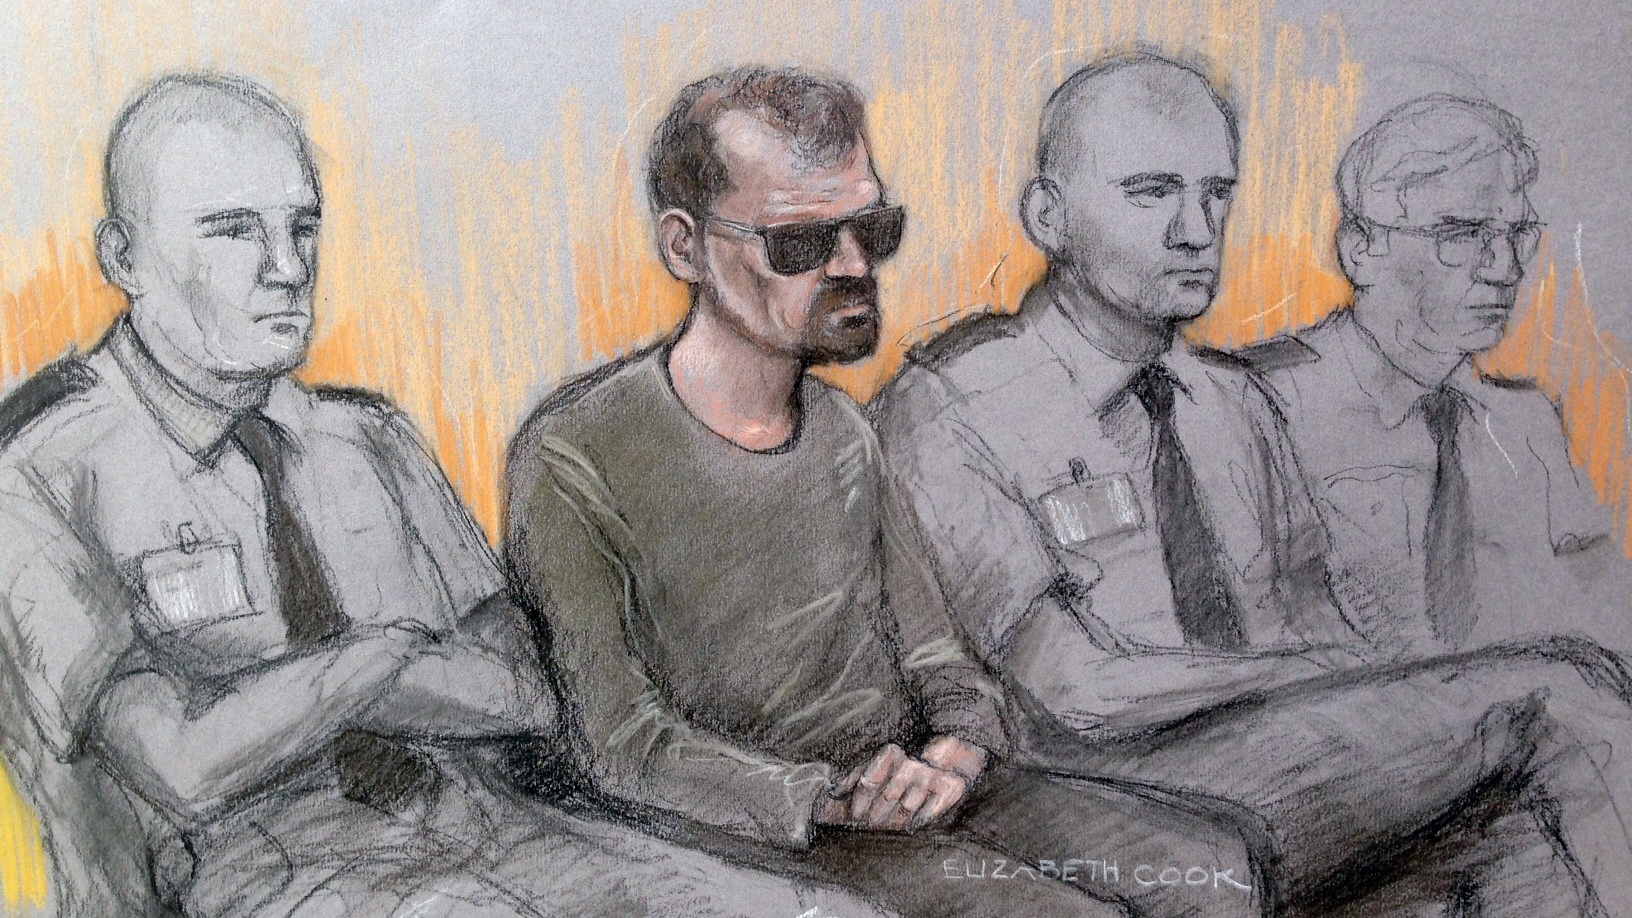 Stefano Brizzi attempted to dispose of Gordon Semple's body in acid.